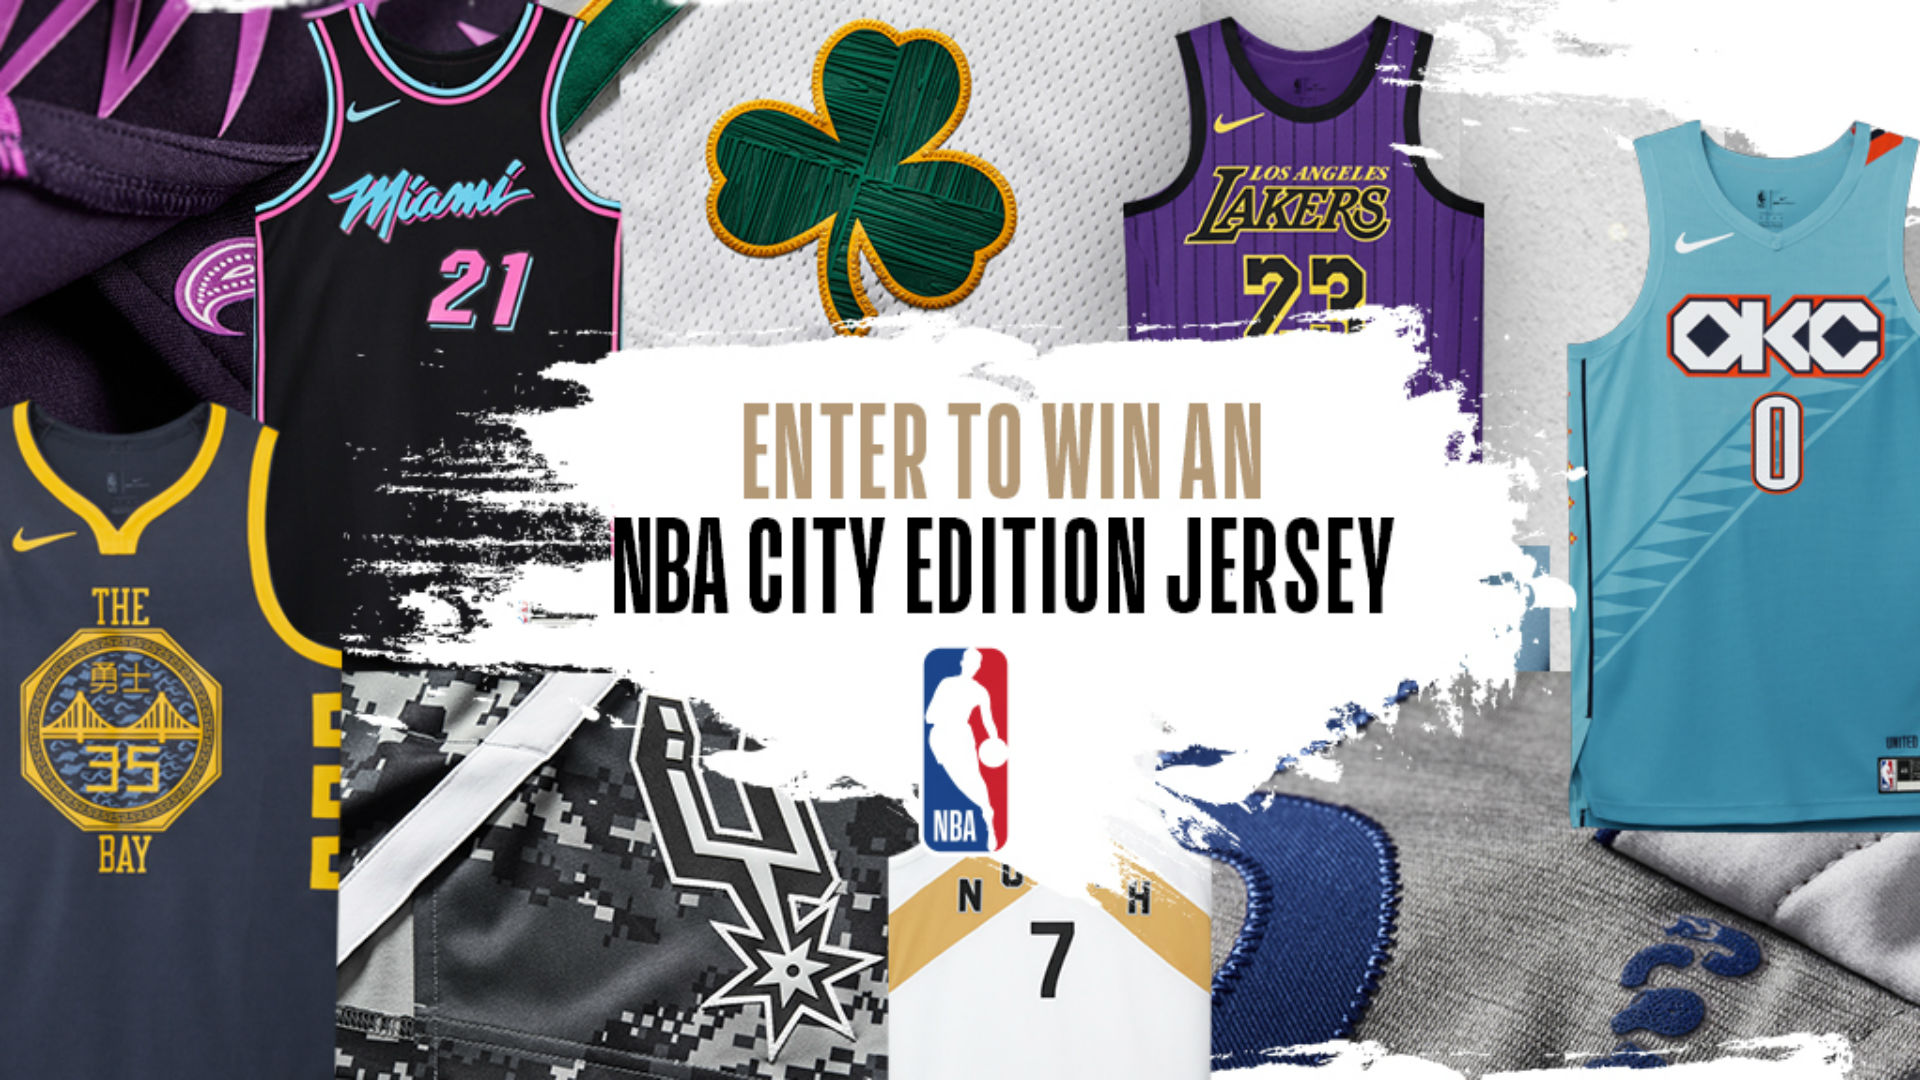 NBA City Edition Jersey Sweepstakes: Enter to win! | NBA ...